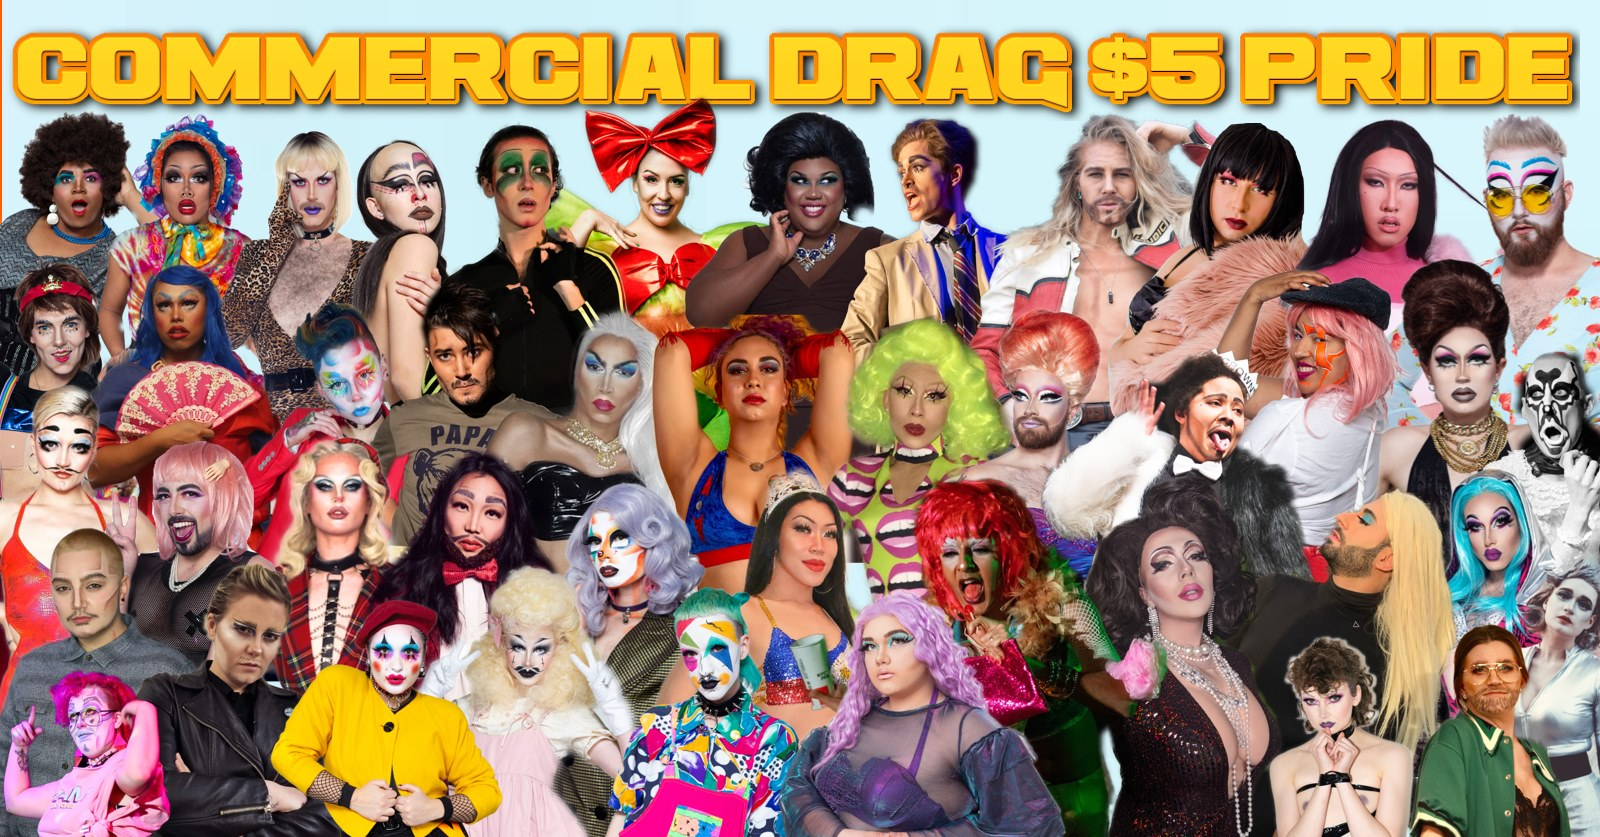 "Event poster reads ""Commercial Drag $5 Pride."" The poster is covered with drag performers of different genders and ethnicities in full costume."